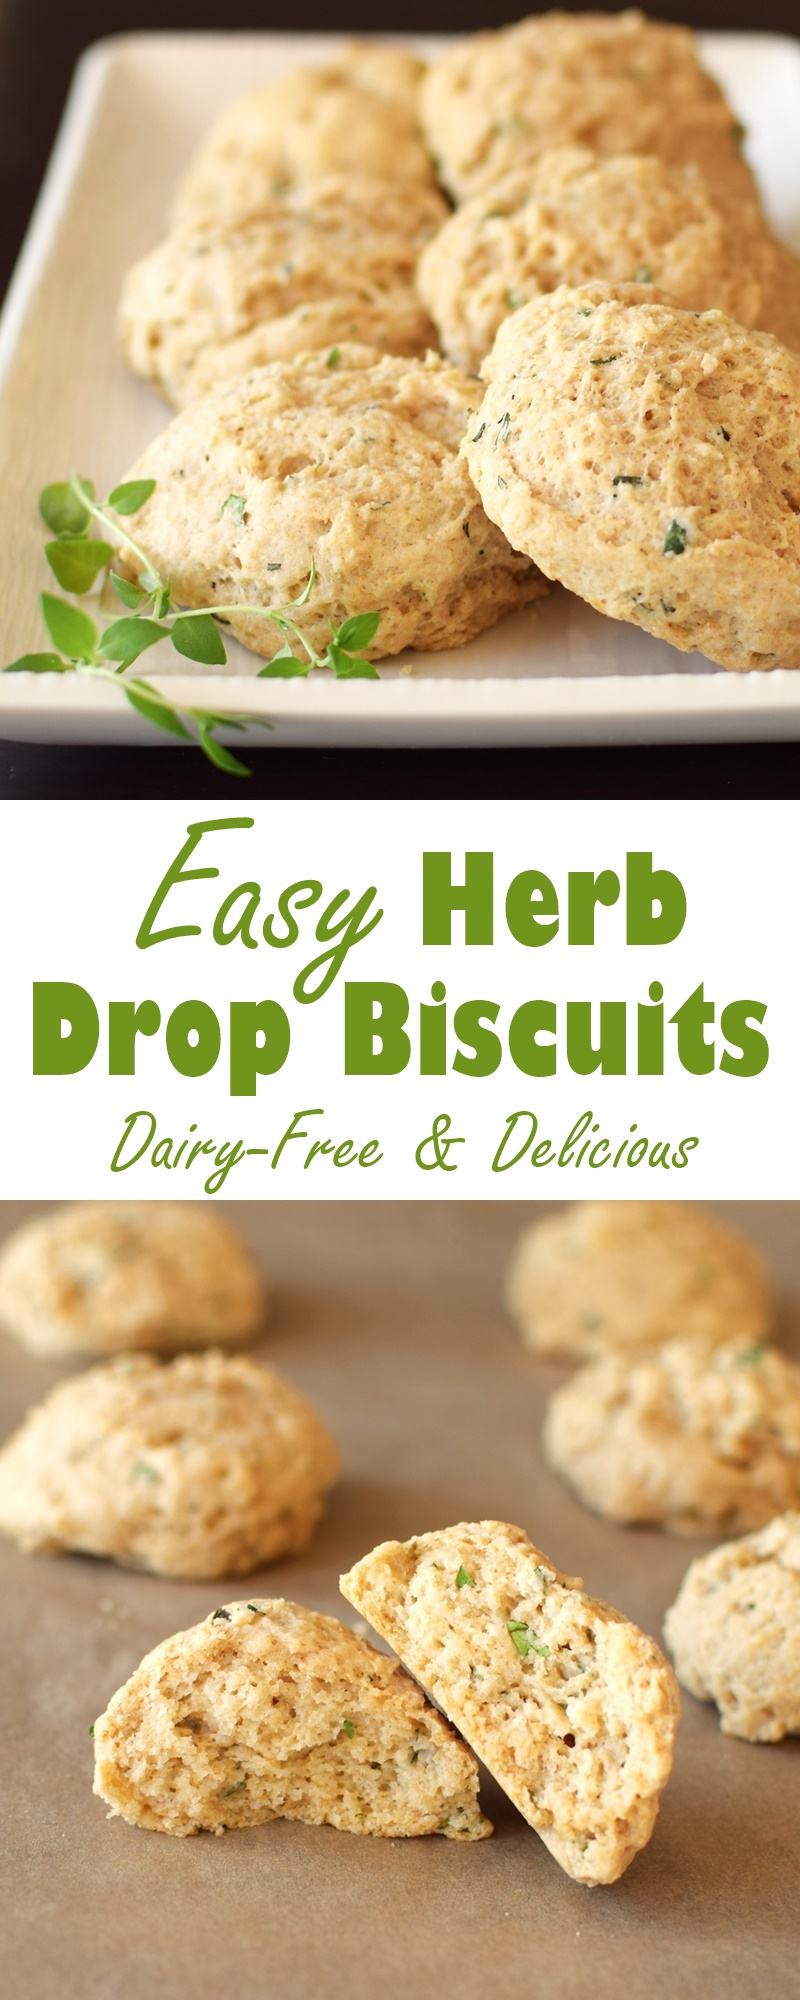 Easy Herb Drop Biscuits - a recipe with surprise everyday ingredients! (dairy-free, optionally vegan and 100% whole wheat recipe)